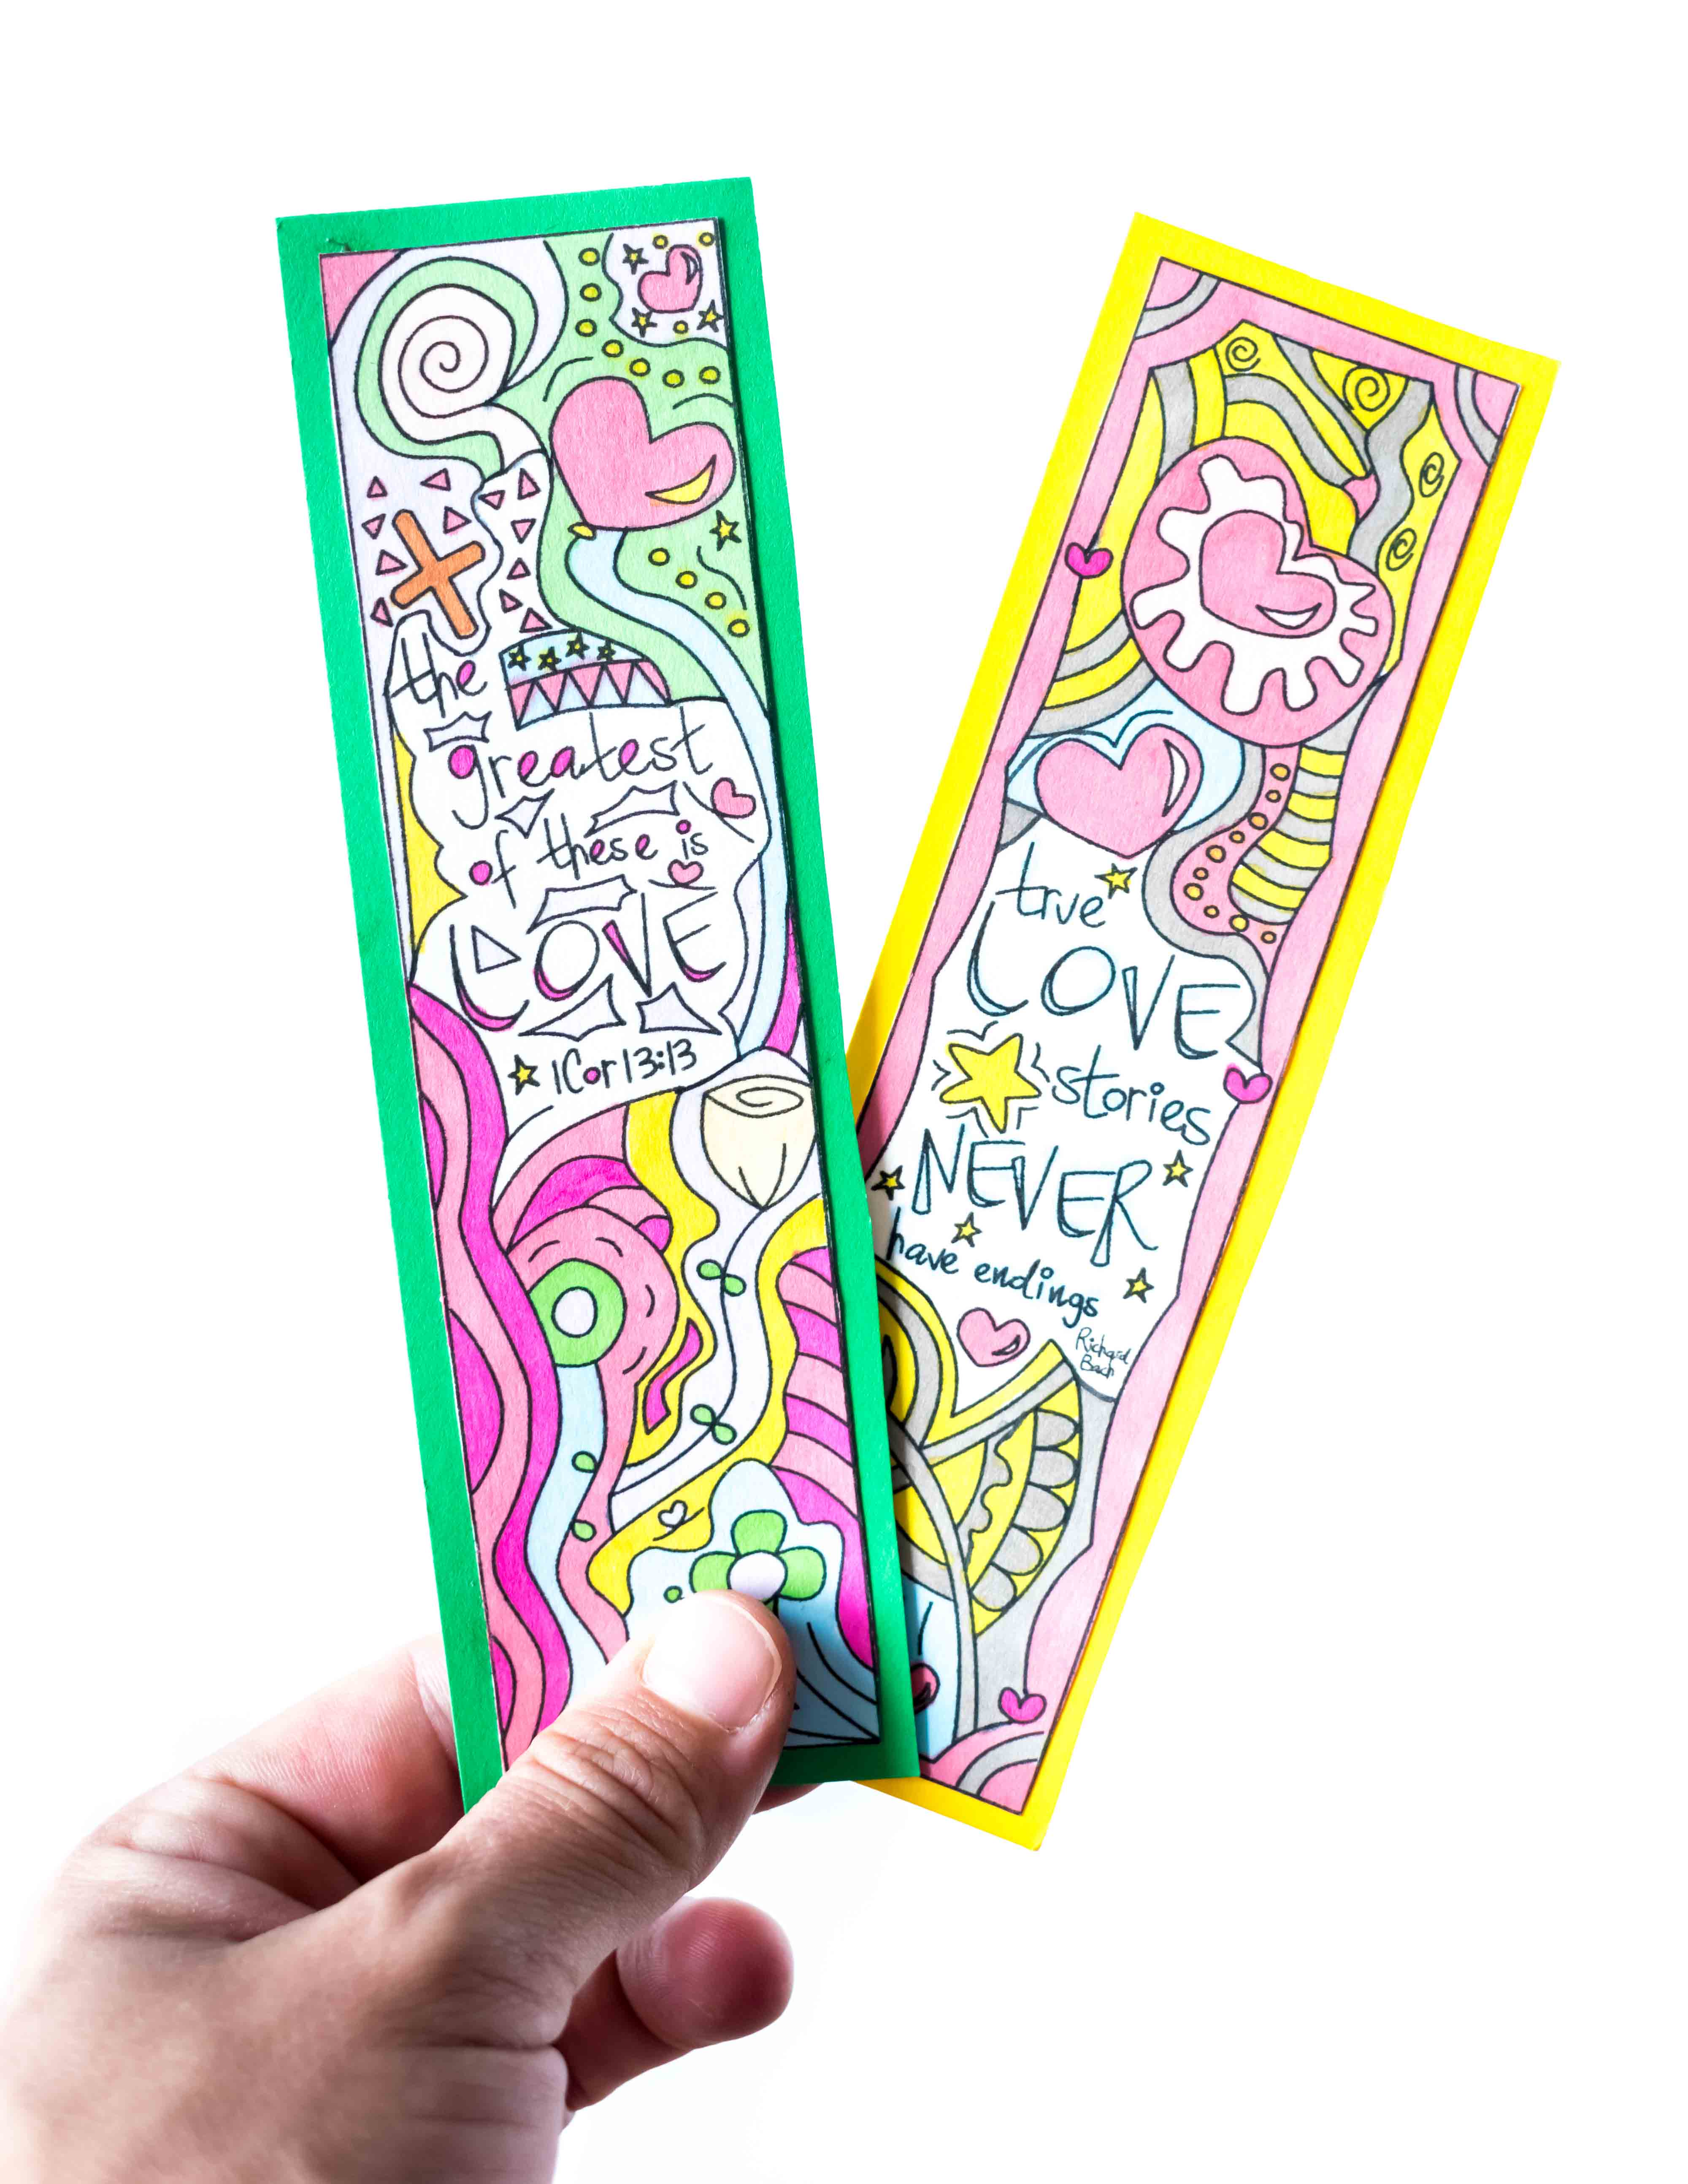 Two Valentine's Day Bookmarks being held in a white background